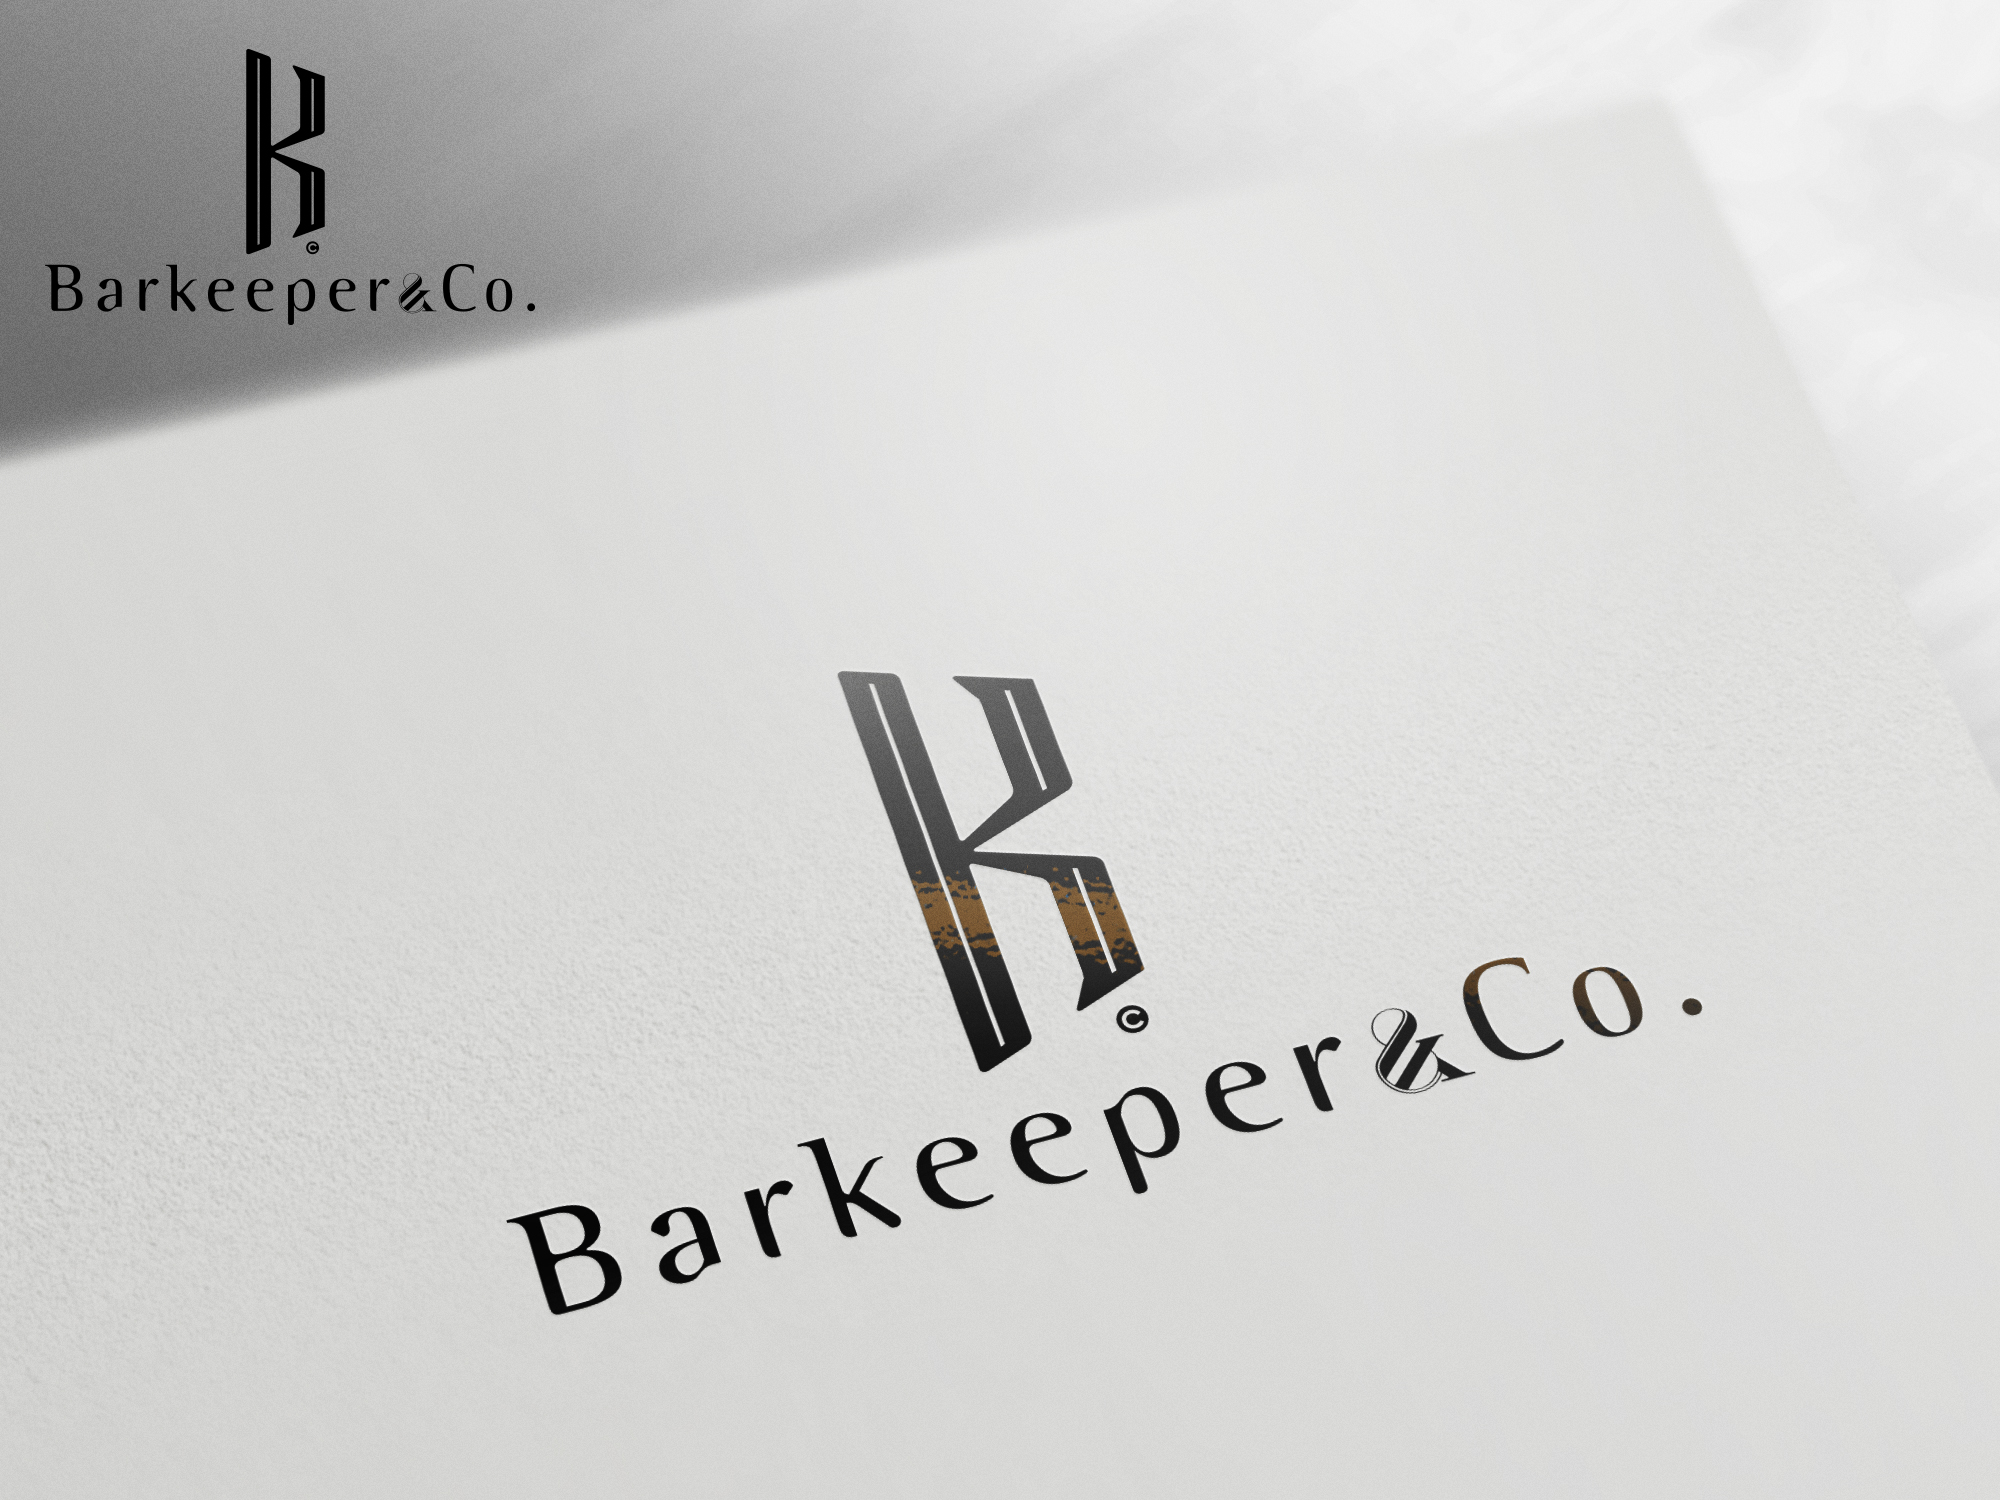 Logo Design by olii - Entry No. 189 in the Logo Design Contest Artistic Logo Design.